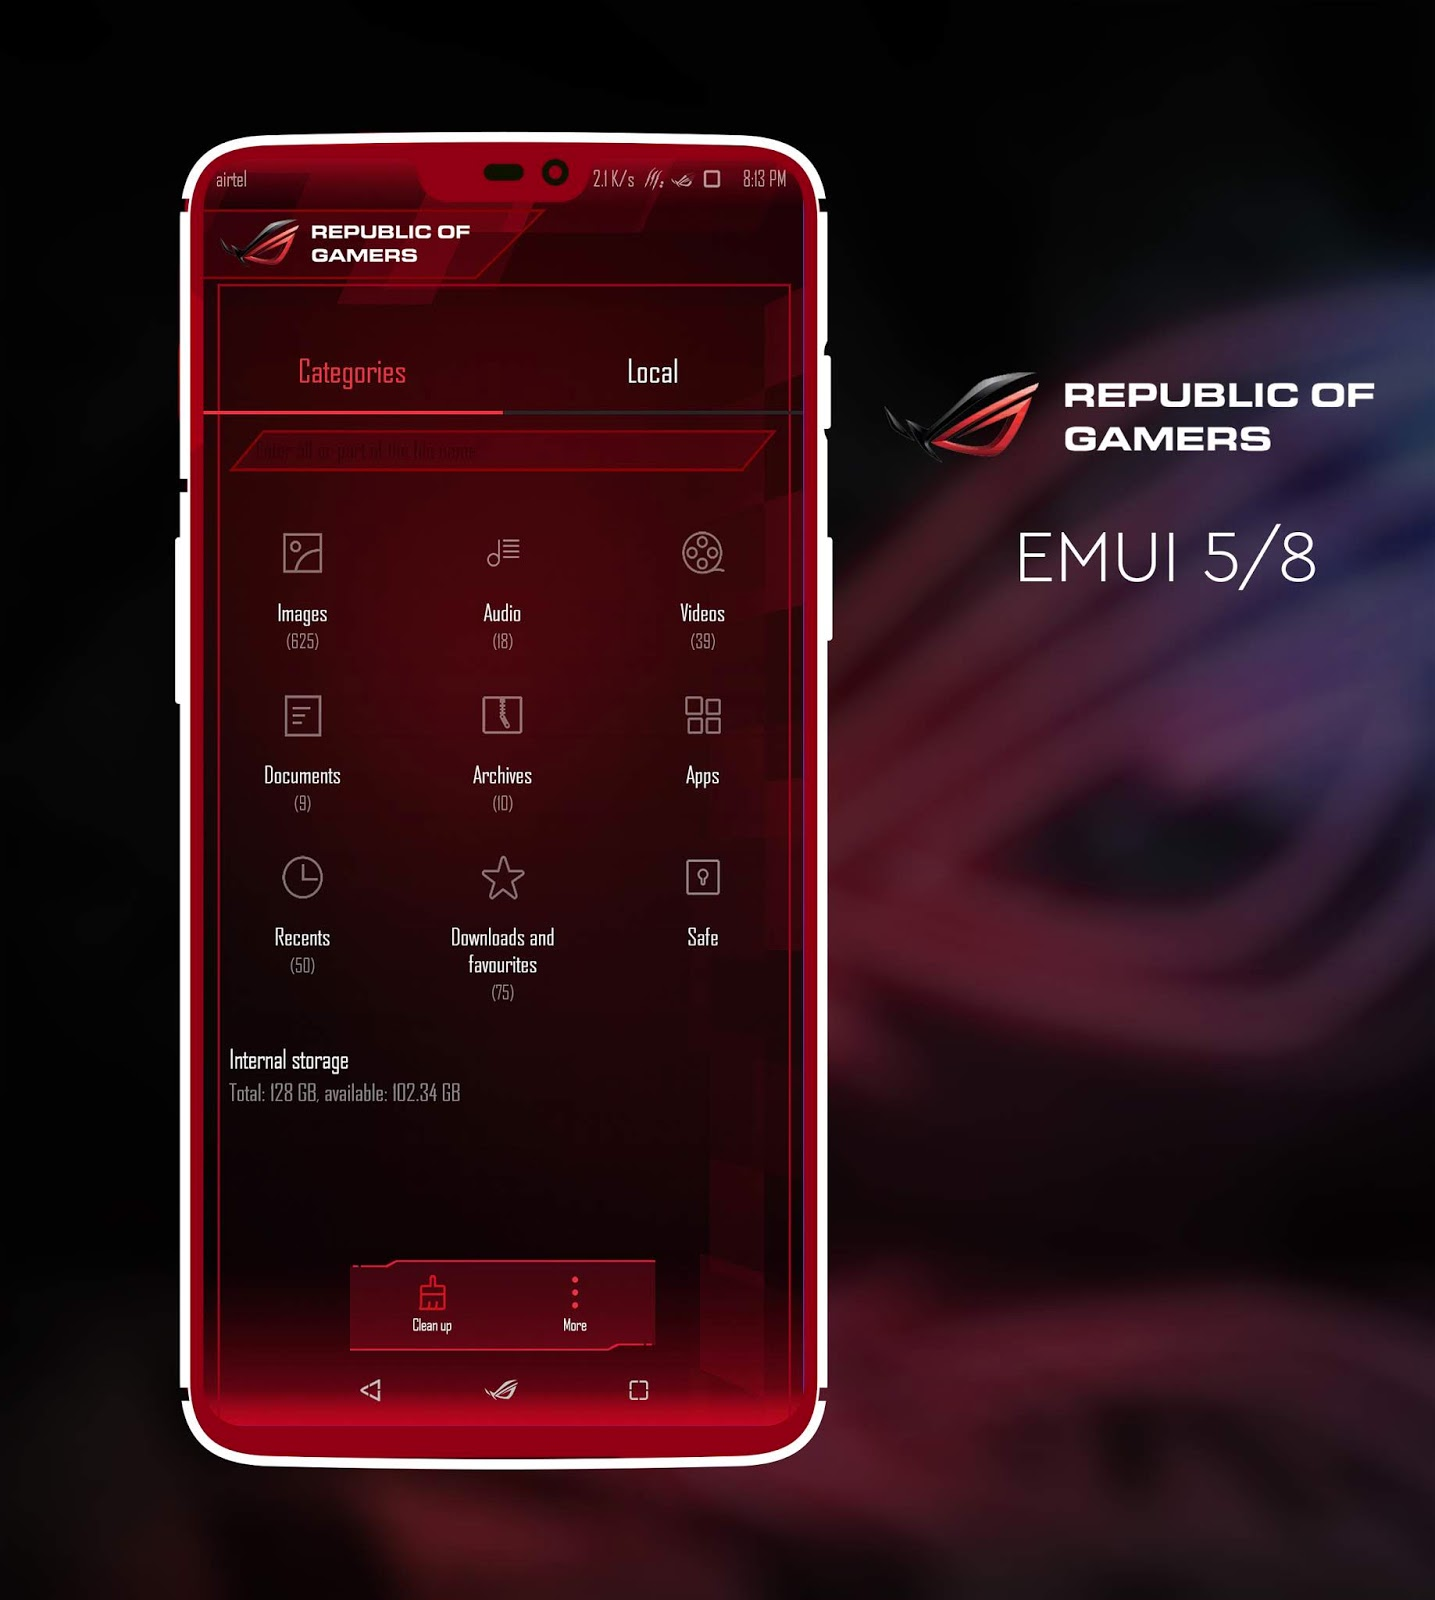 Asus ROG EMUI Theme Screens 4